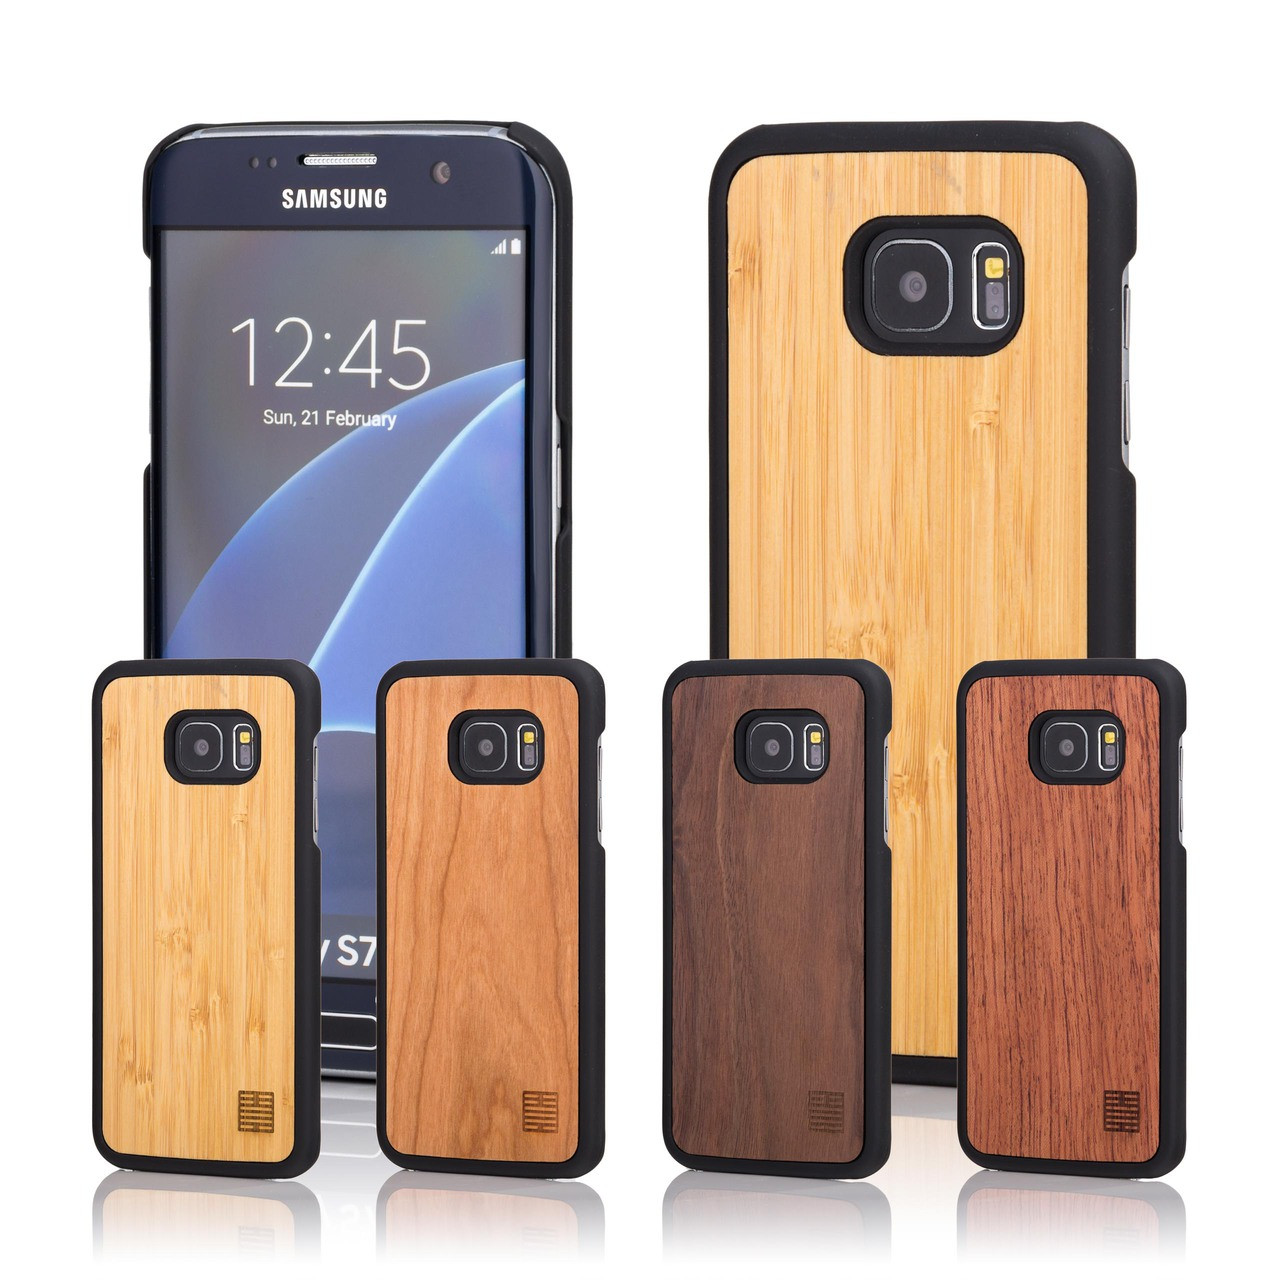 low priced 79db4 cb6ee Samsung Galaxy S7 Edge Wooden Back Cover Case